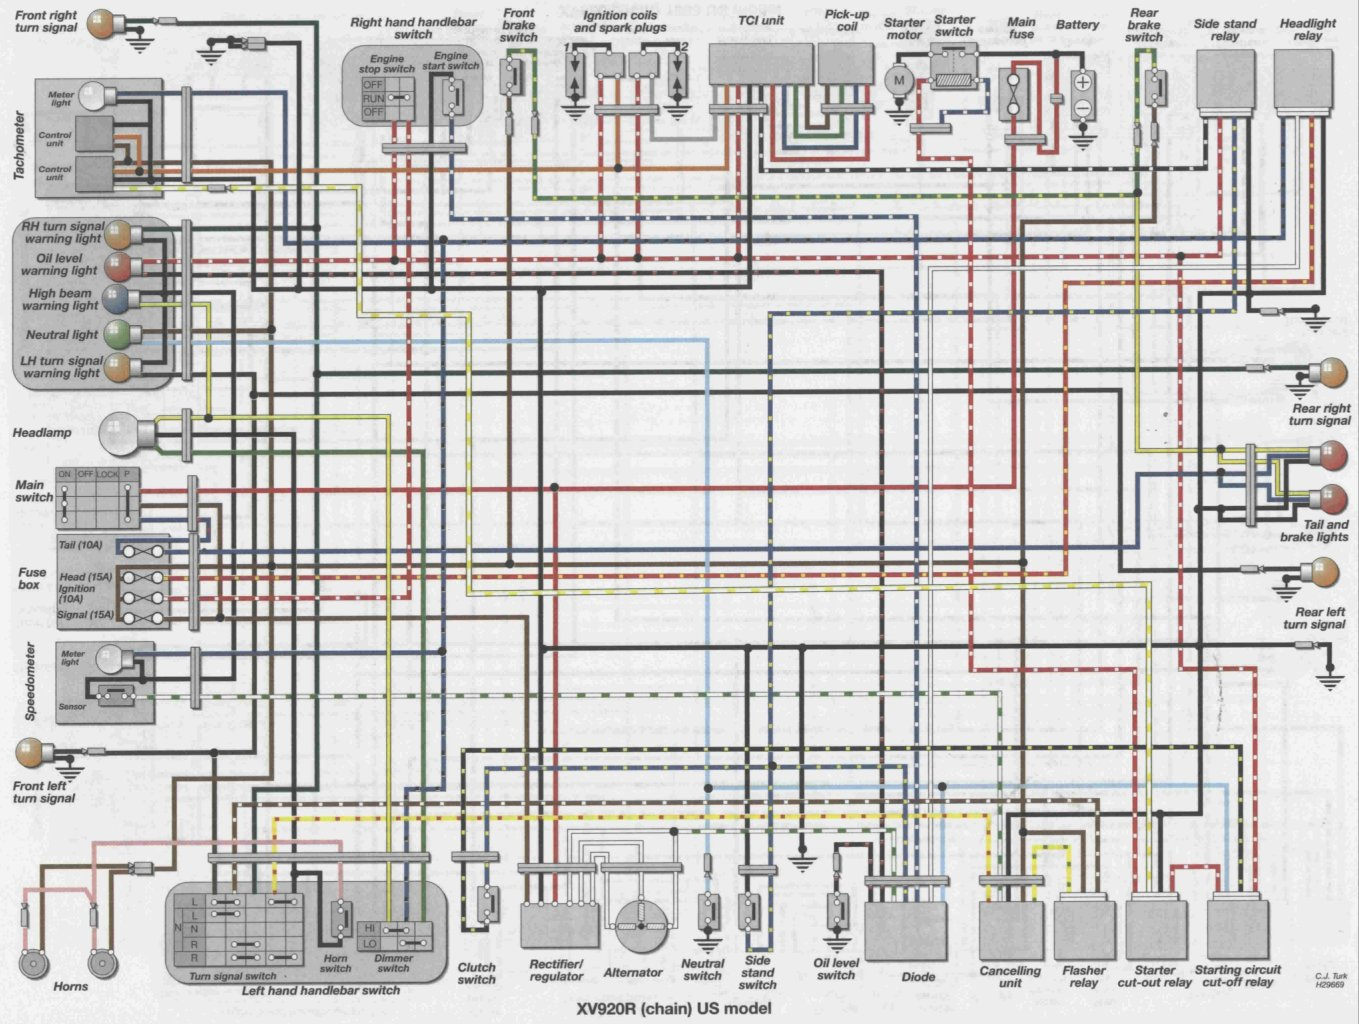 diagram] 82 xv920 wiring diagram full version hd quality wiring diagram -  painlesswiring.lexanesirac.fr  painlesswiring.lexanesirac.fr